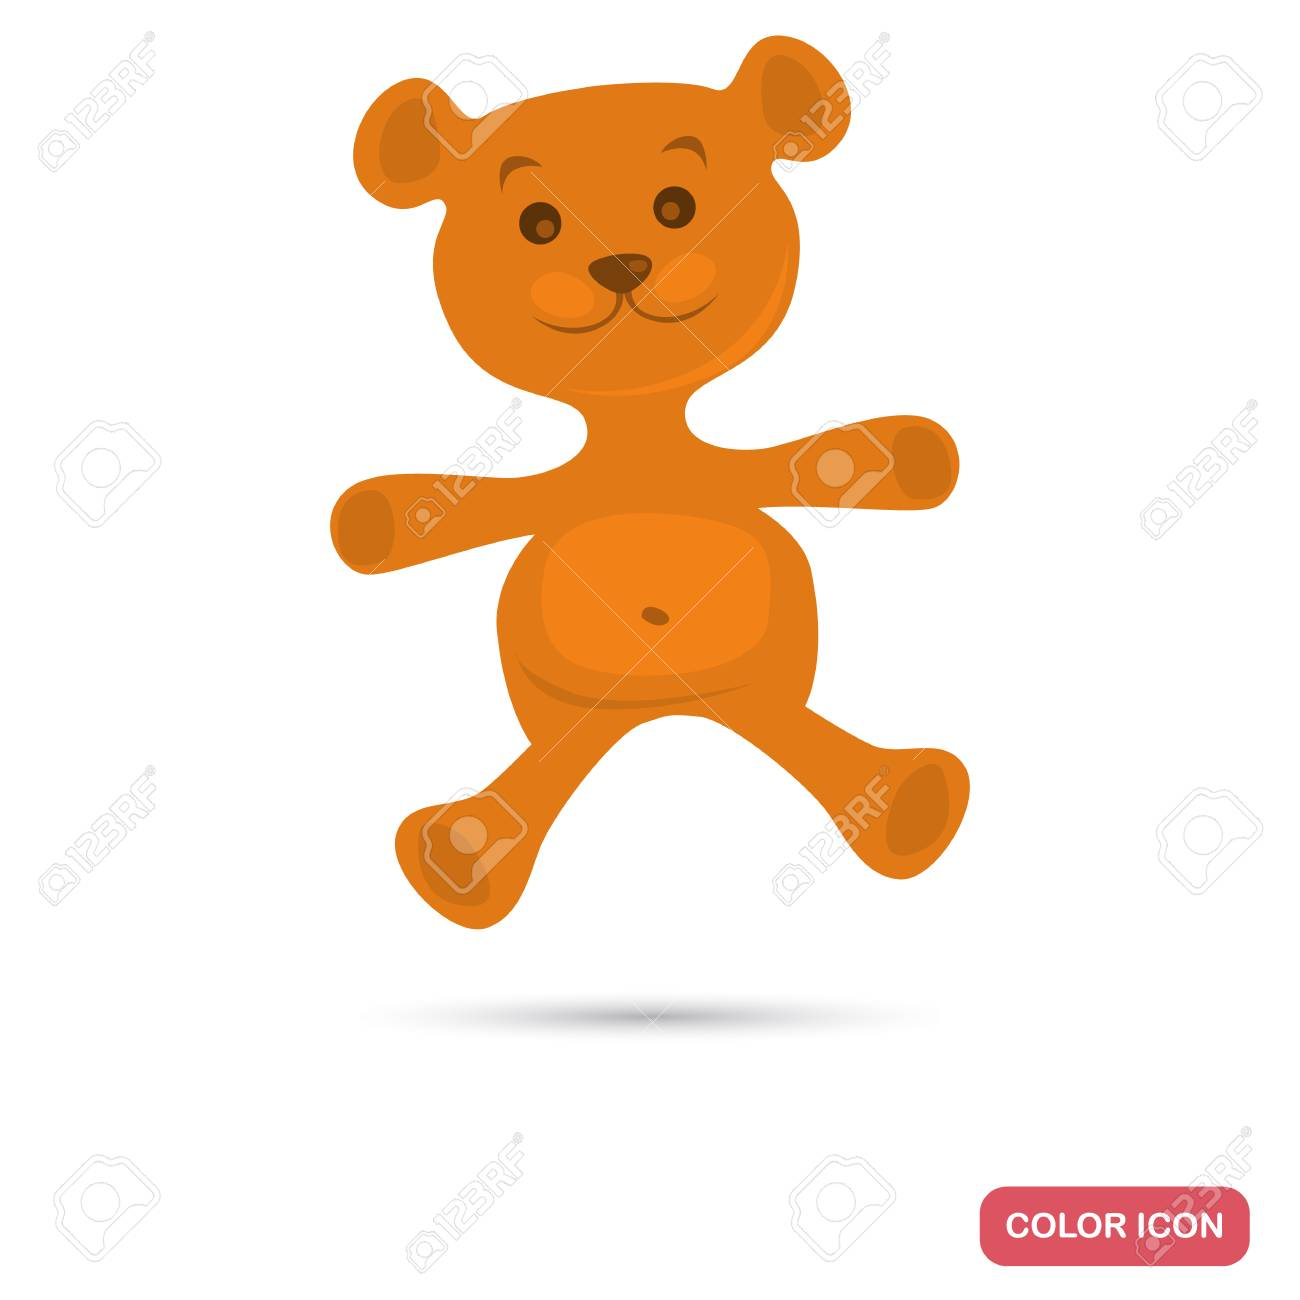 teddy bear color flat icon royalty free cliparts vectors and stock